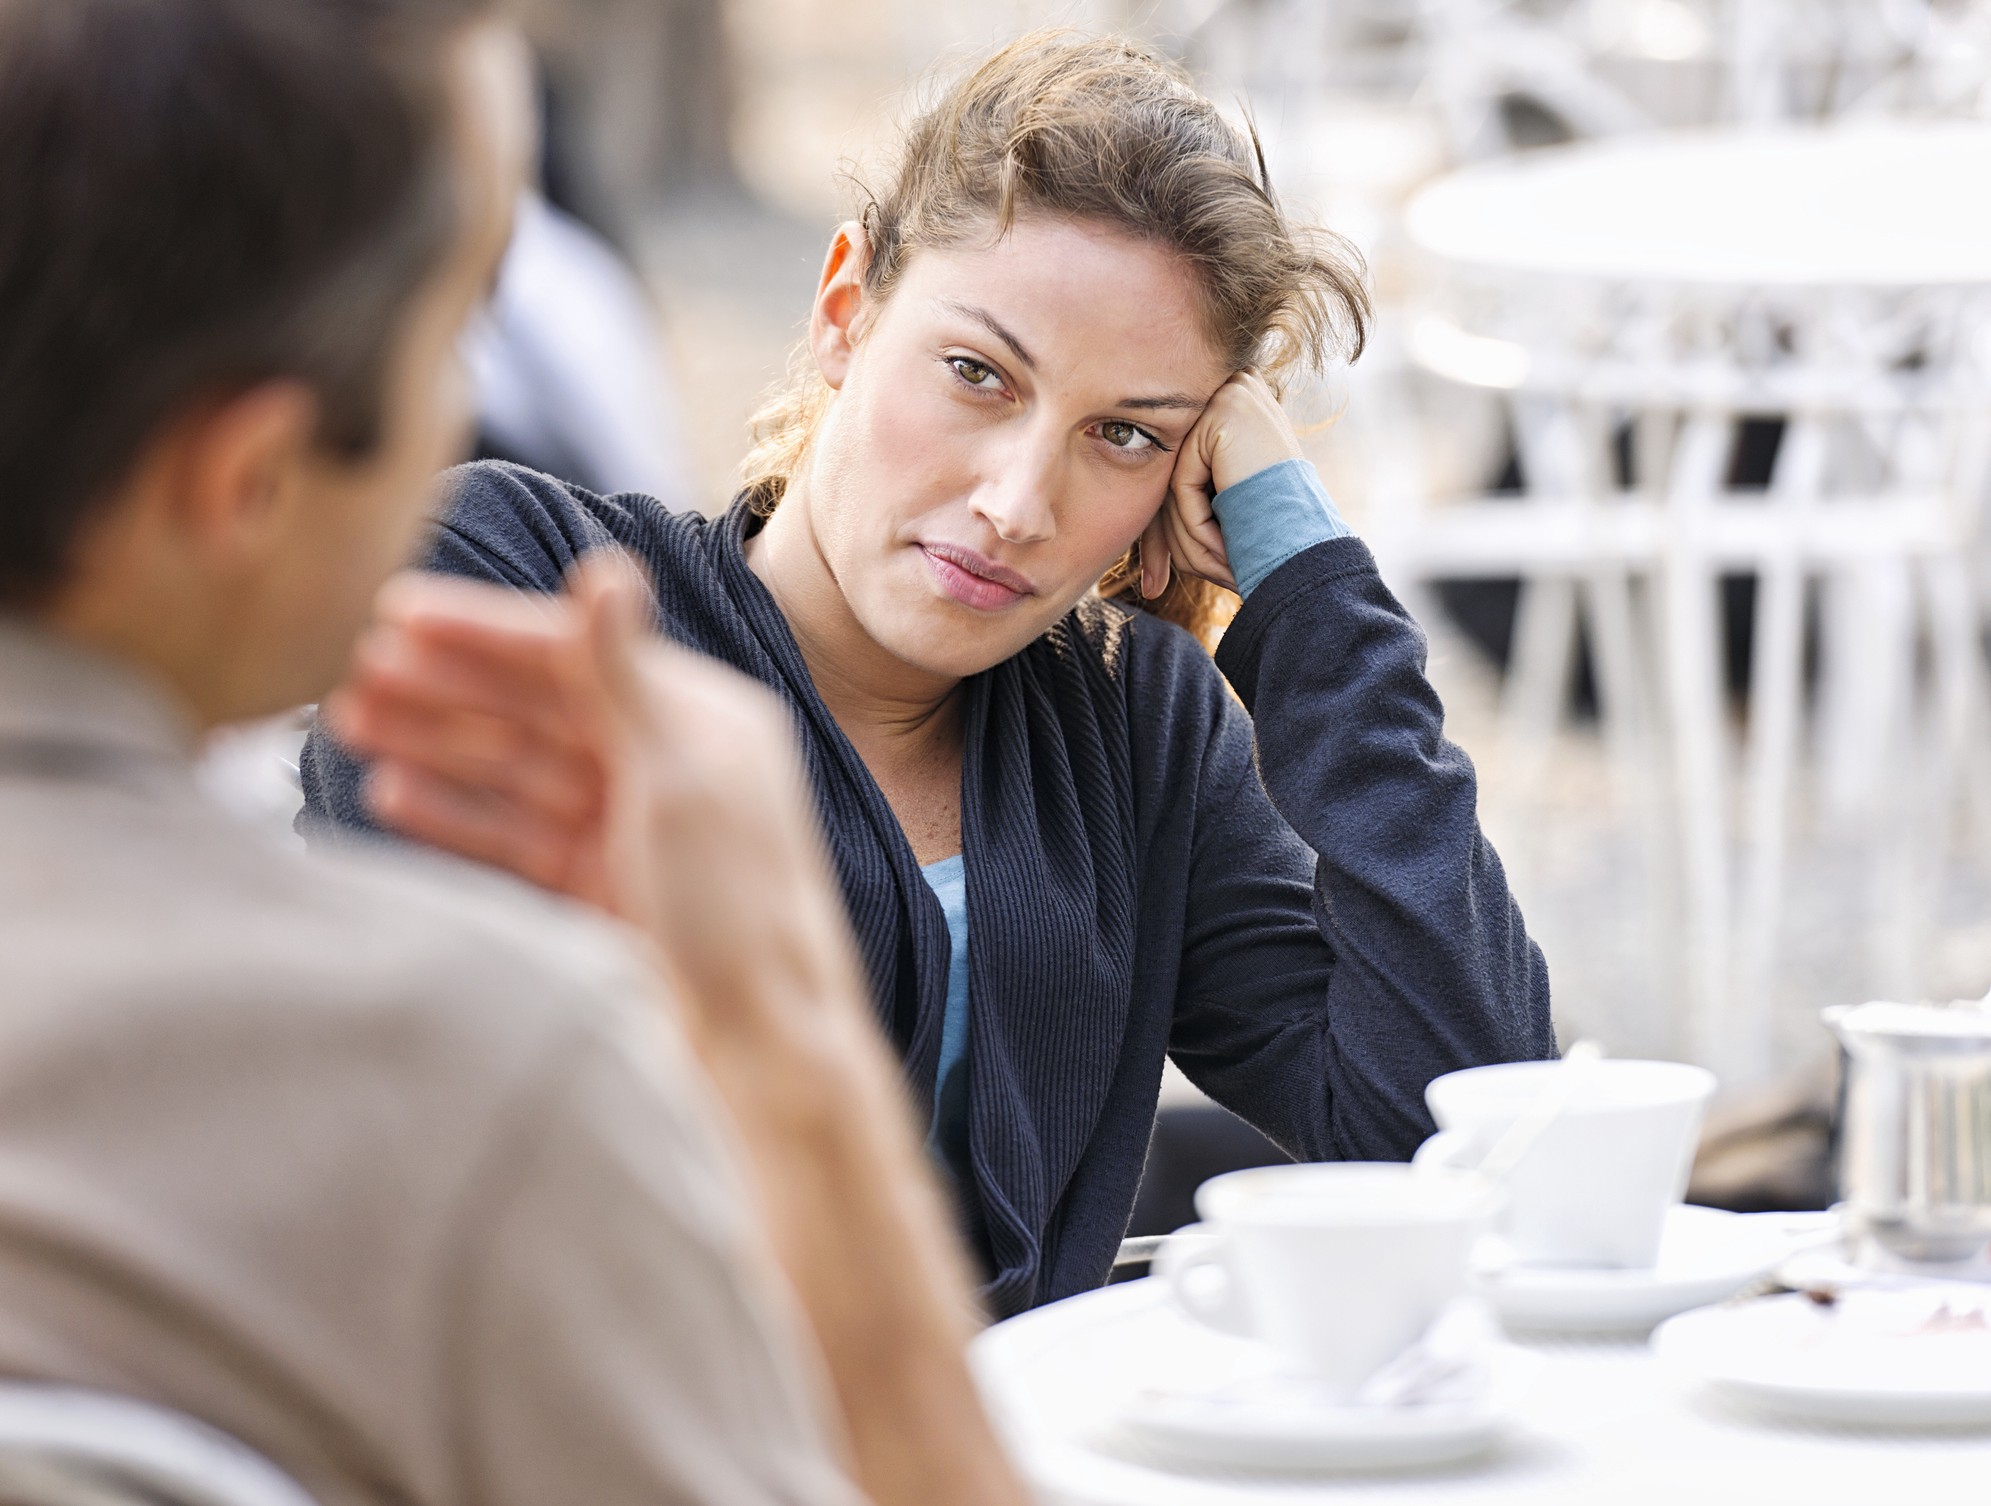 A photo of a slightly disgruntled woman looking at a man talk, waiting for him to finish.